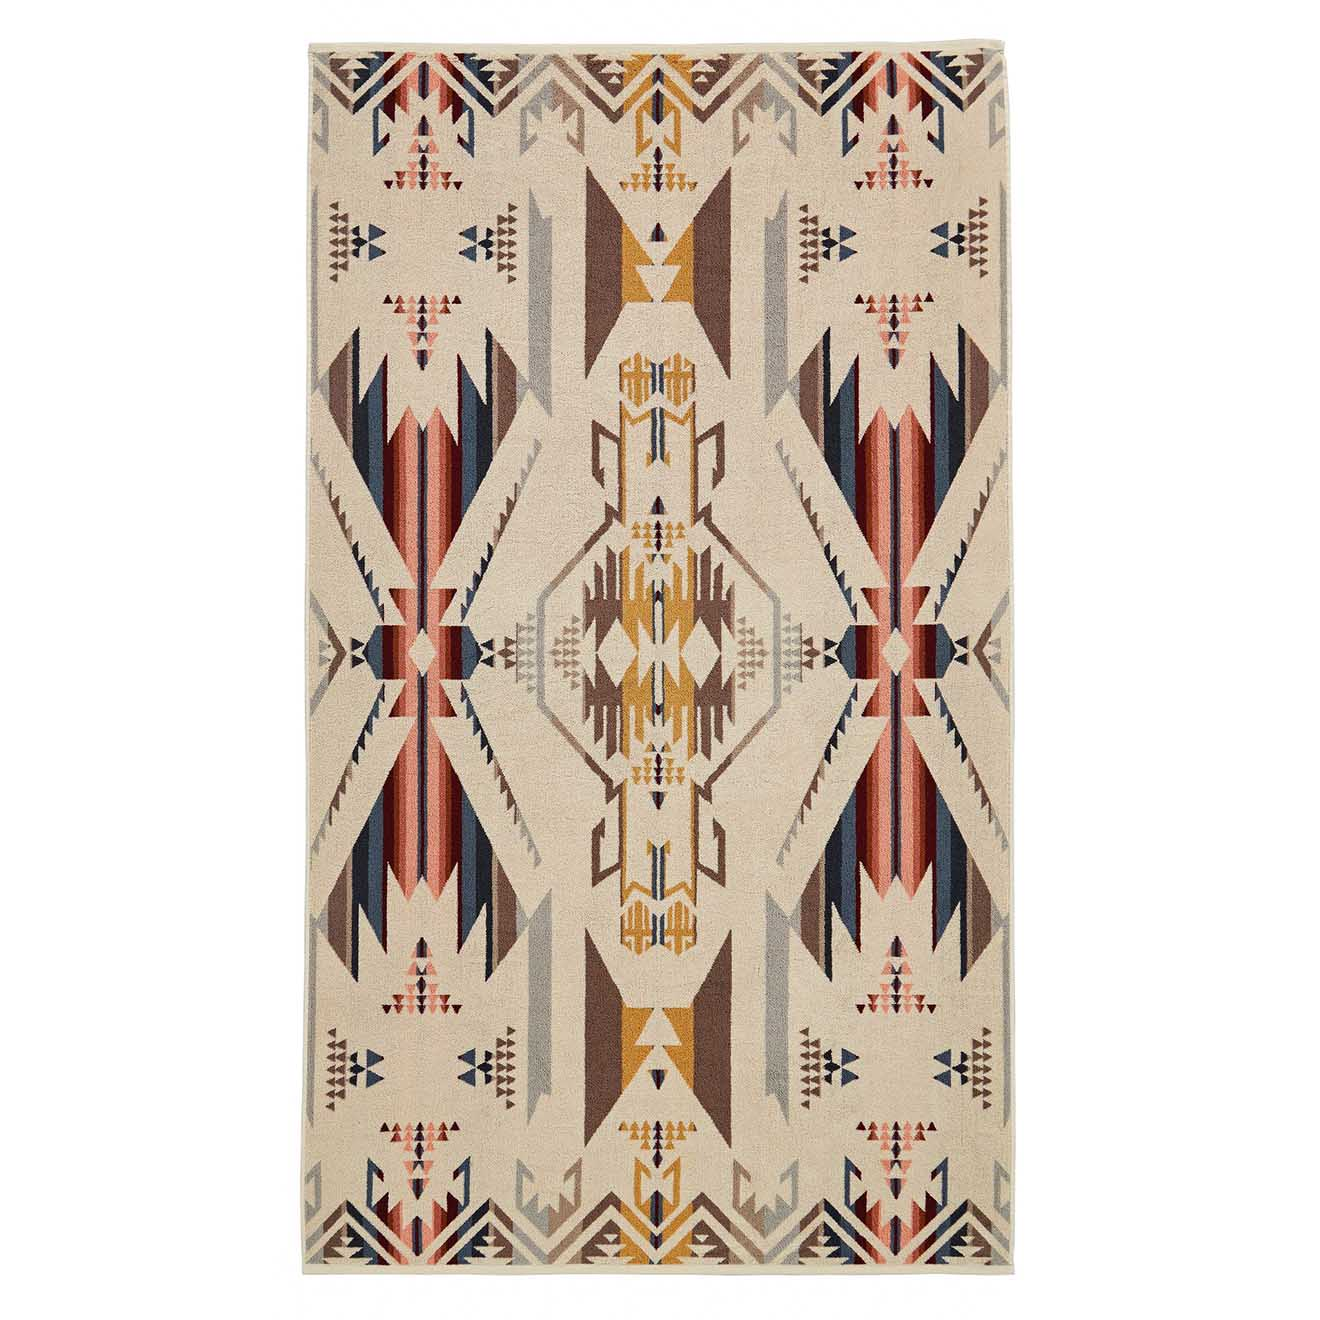 Pendleton Oversized Towel White Sands Tan